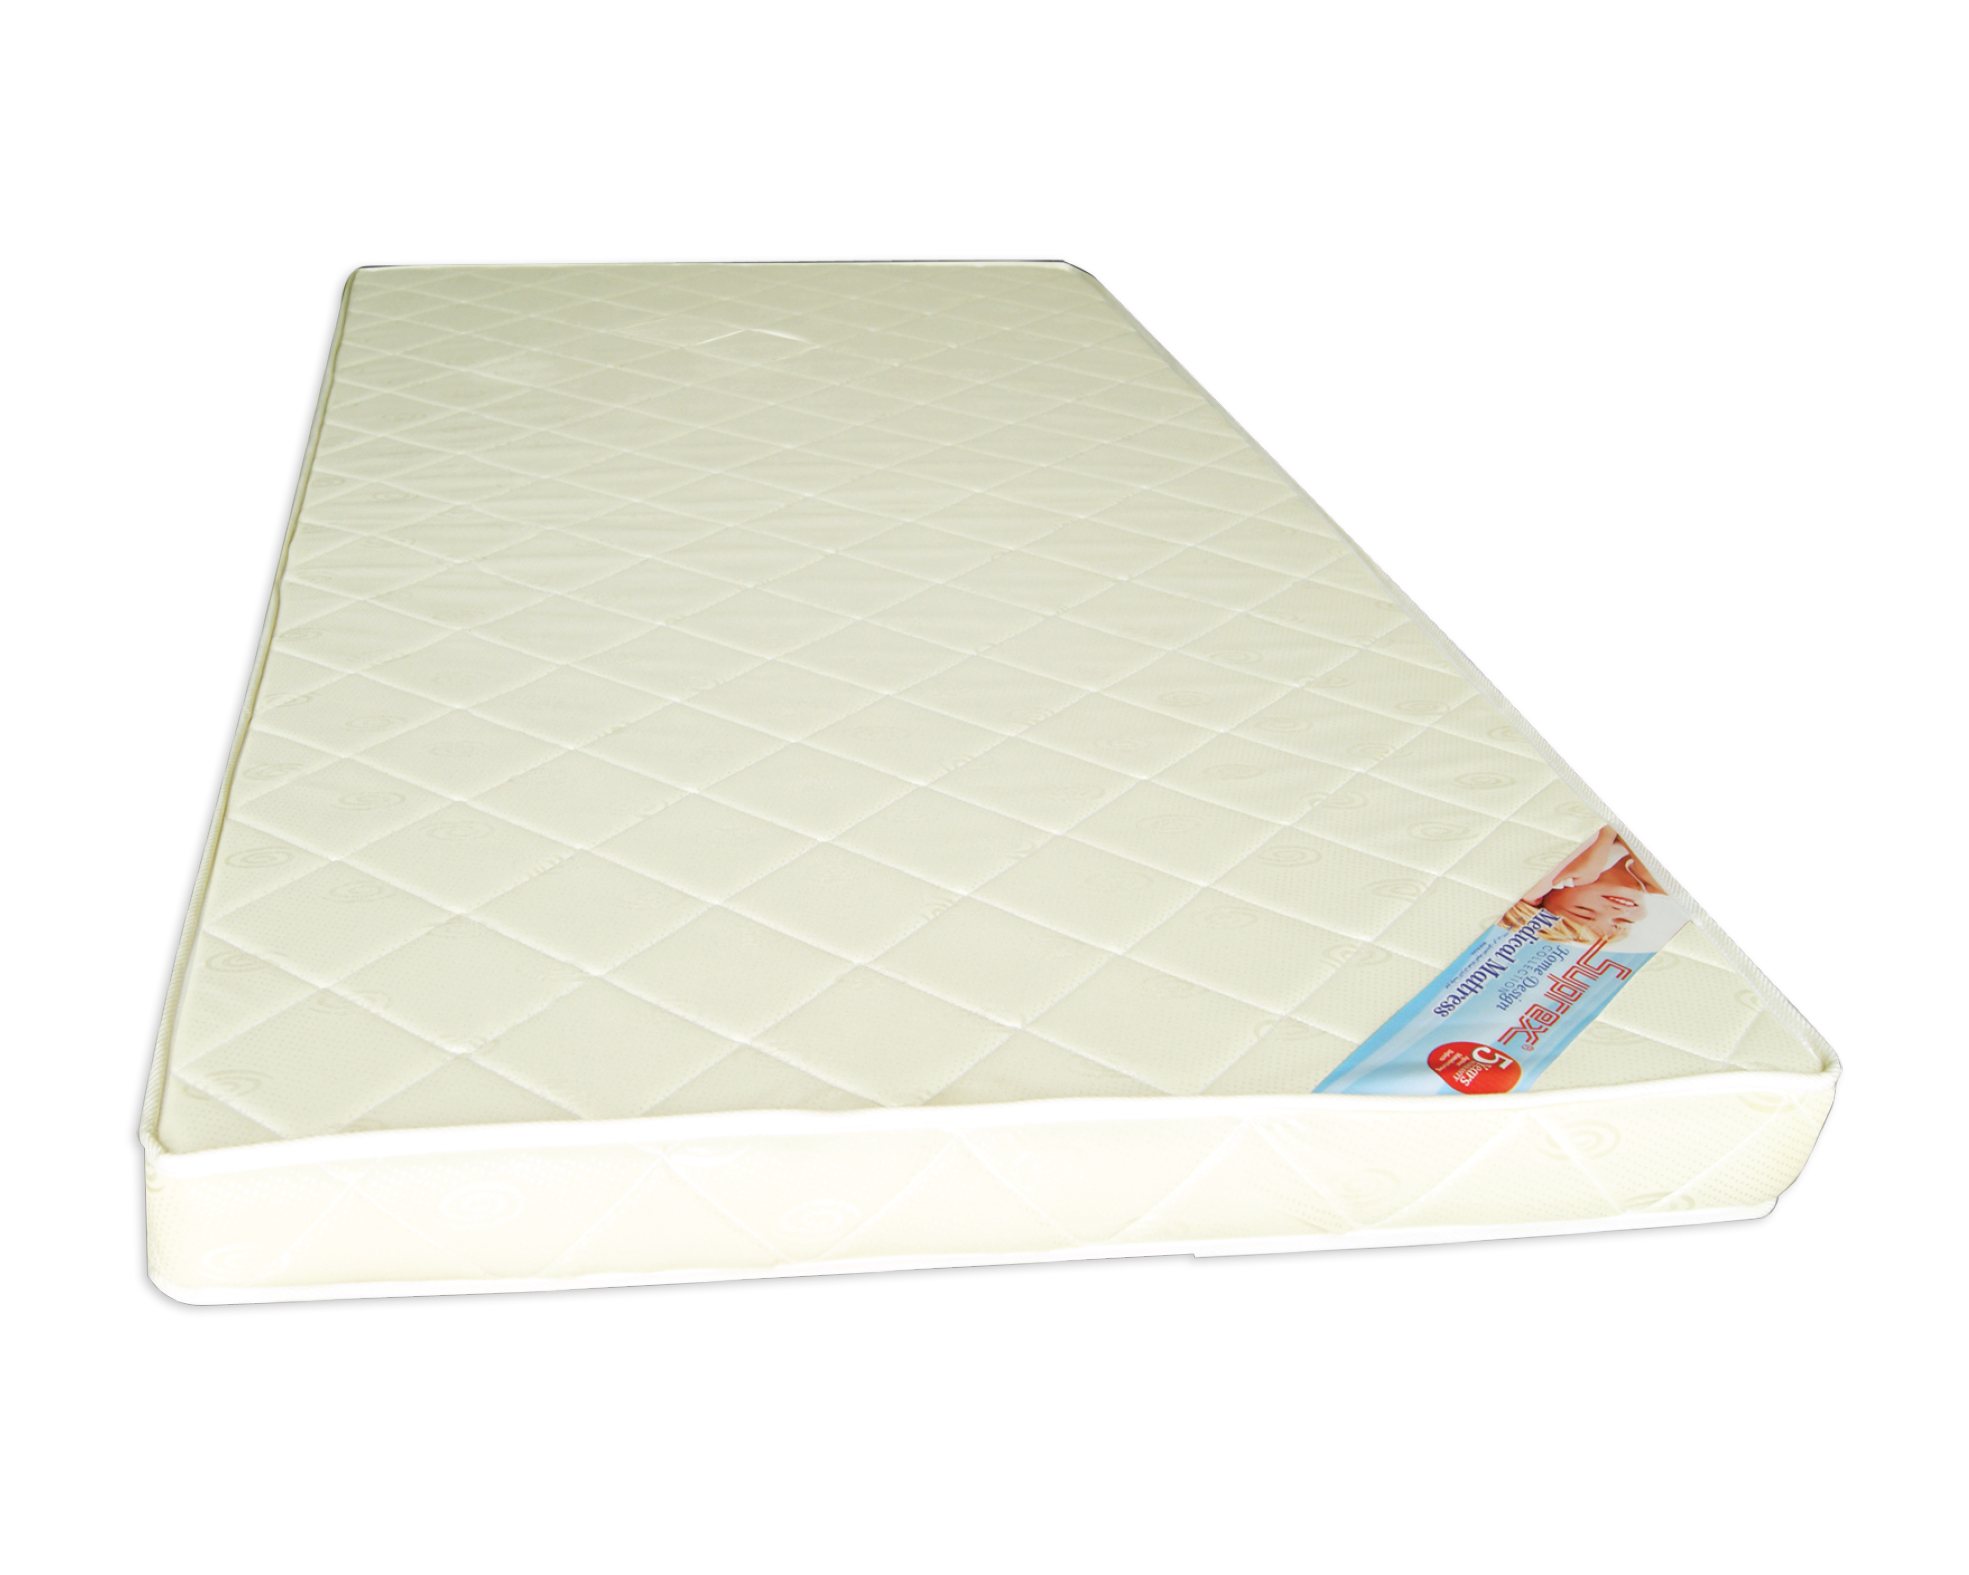 Medical Mattress-Reliable, trusted mattress from top manufacturers